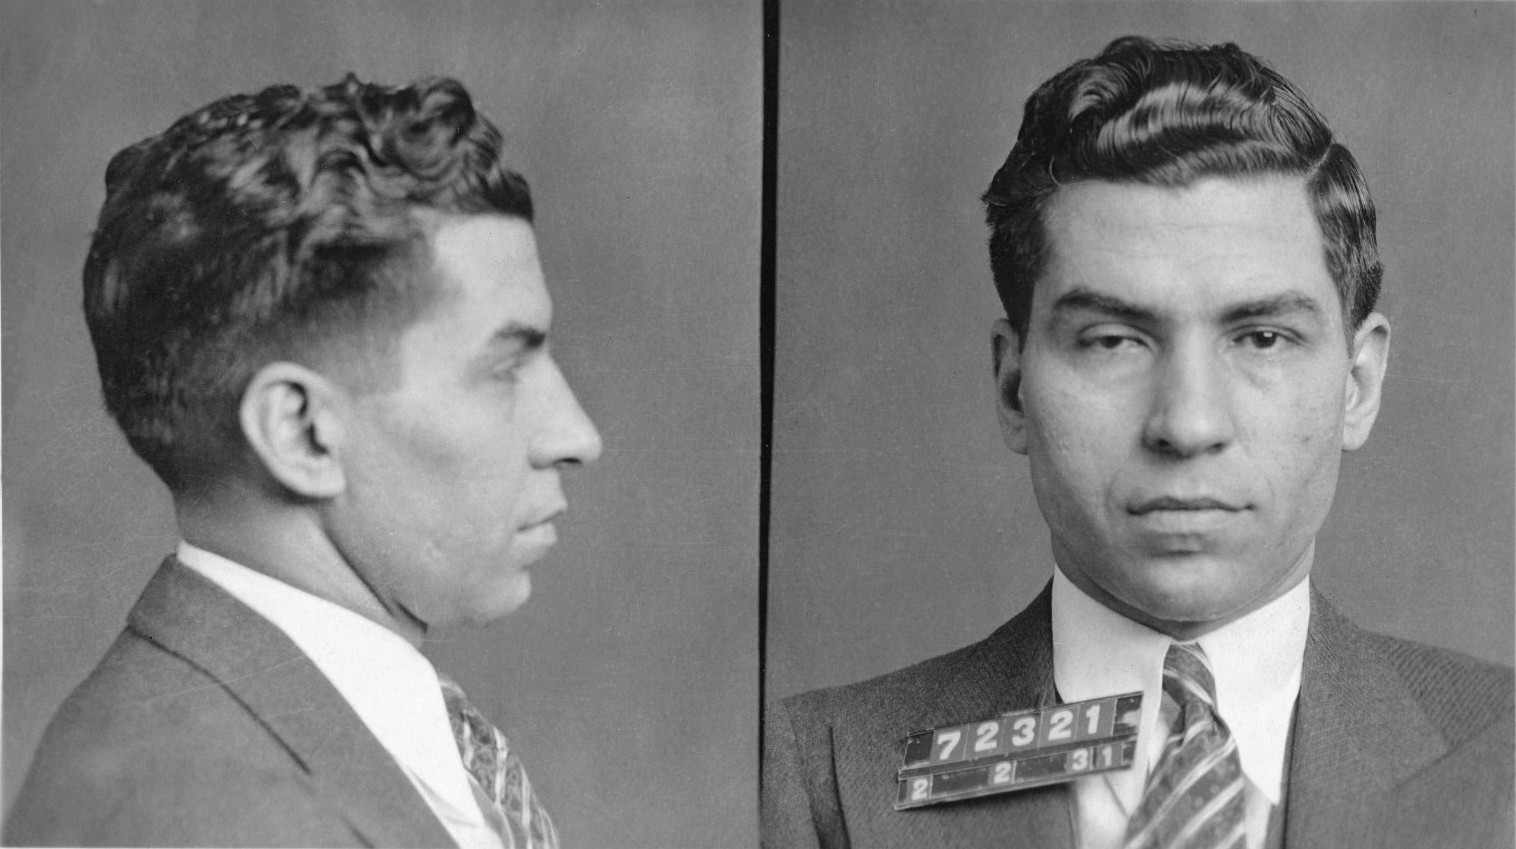 Charles Luciano – famous gangster